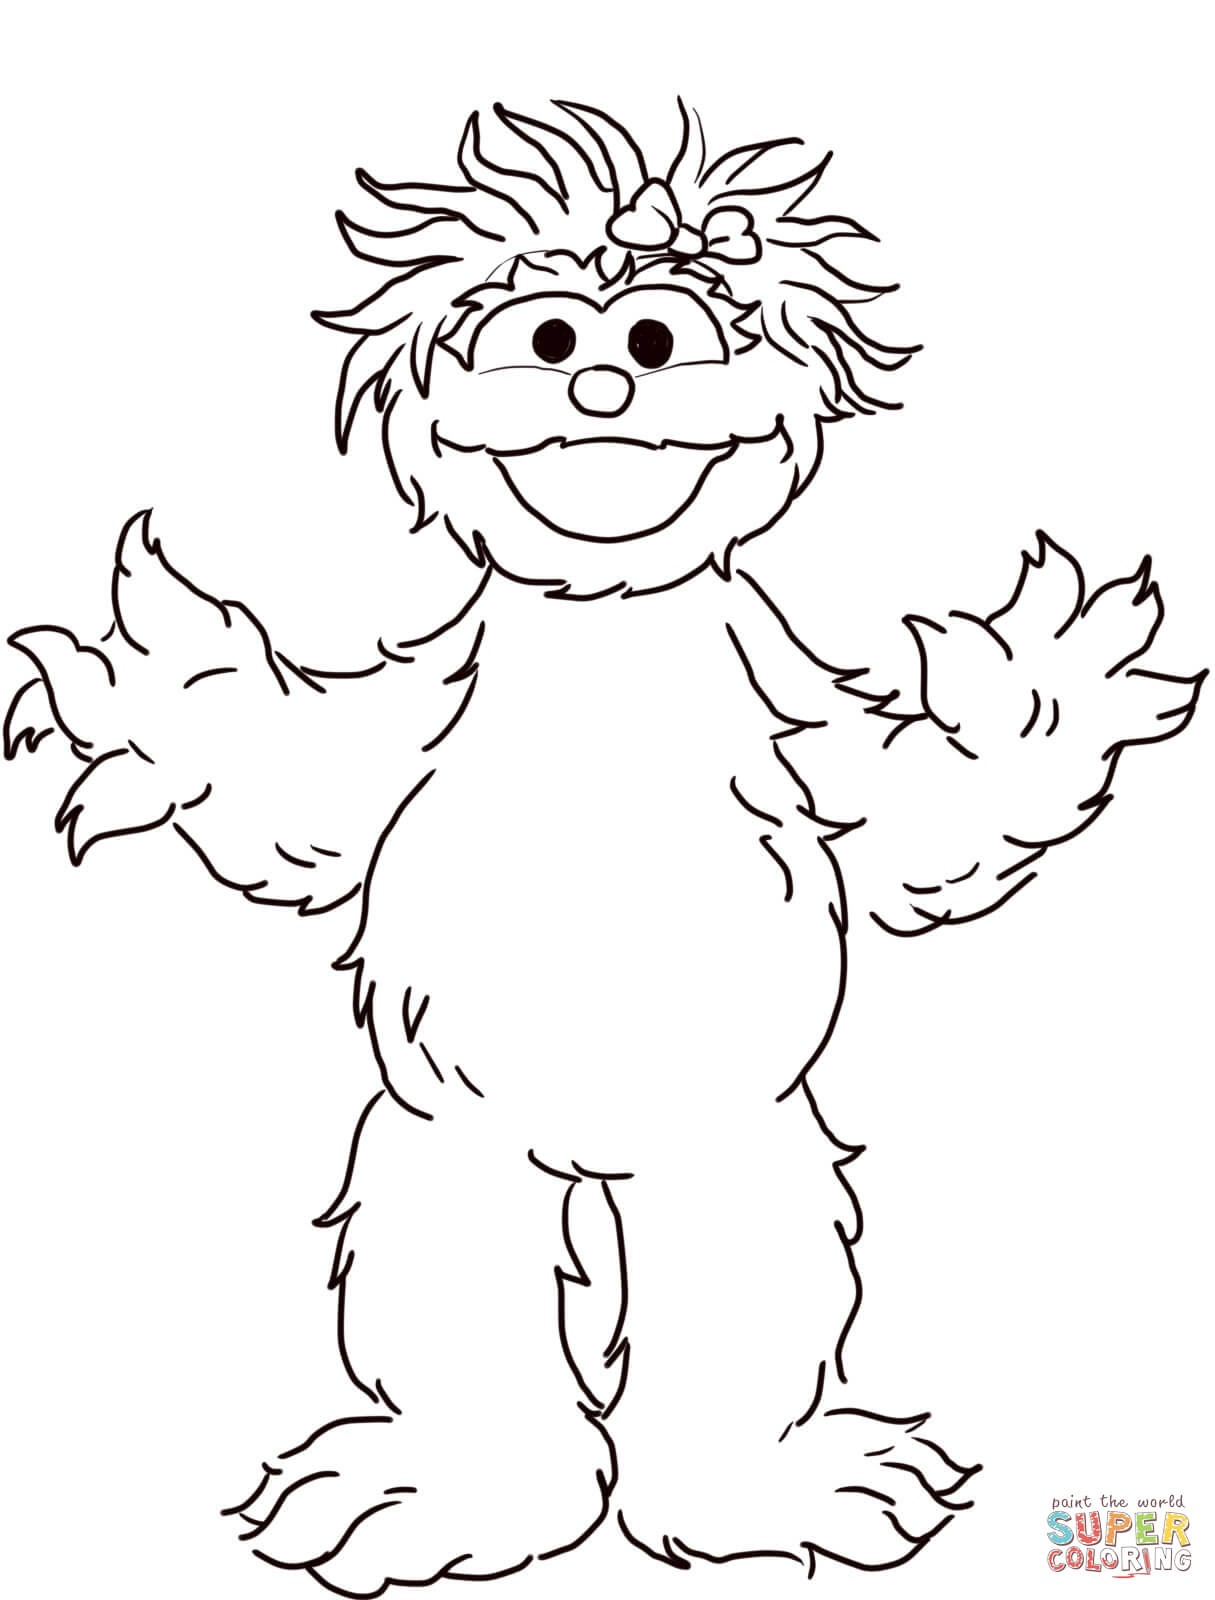 Sesame Street Coloring Pages | Free Coloring Pages - Free Printable Coloring Pages Sesame Street Characters